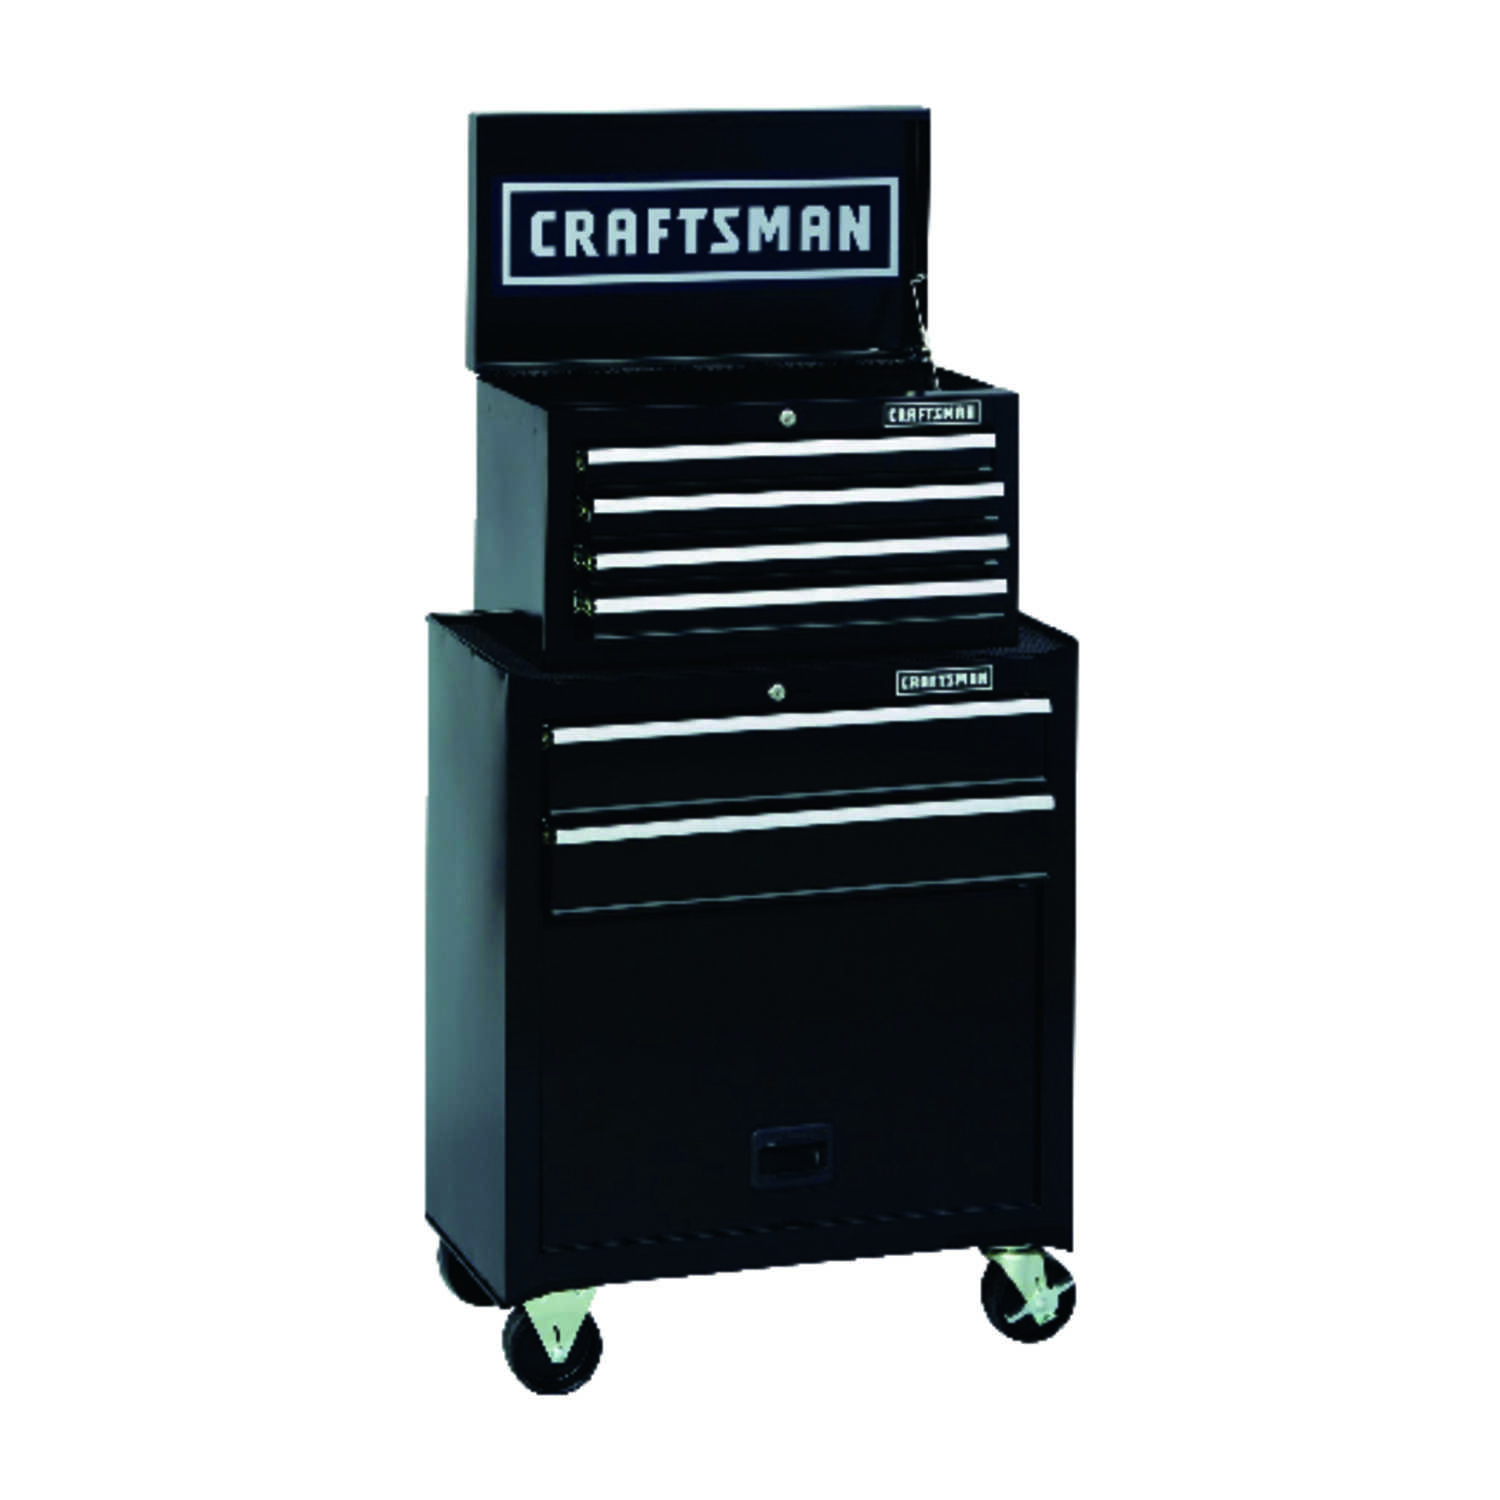 f9e09087f7a Craftsman 26.5 in. 6 drawer Steel Rolling Tool Cabinet 44.25 in. H x 14 in.  D Black - Ace Hardware